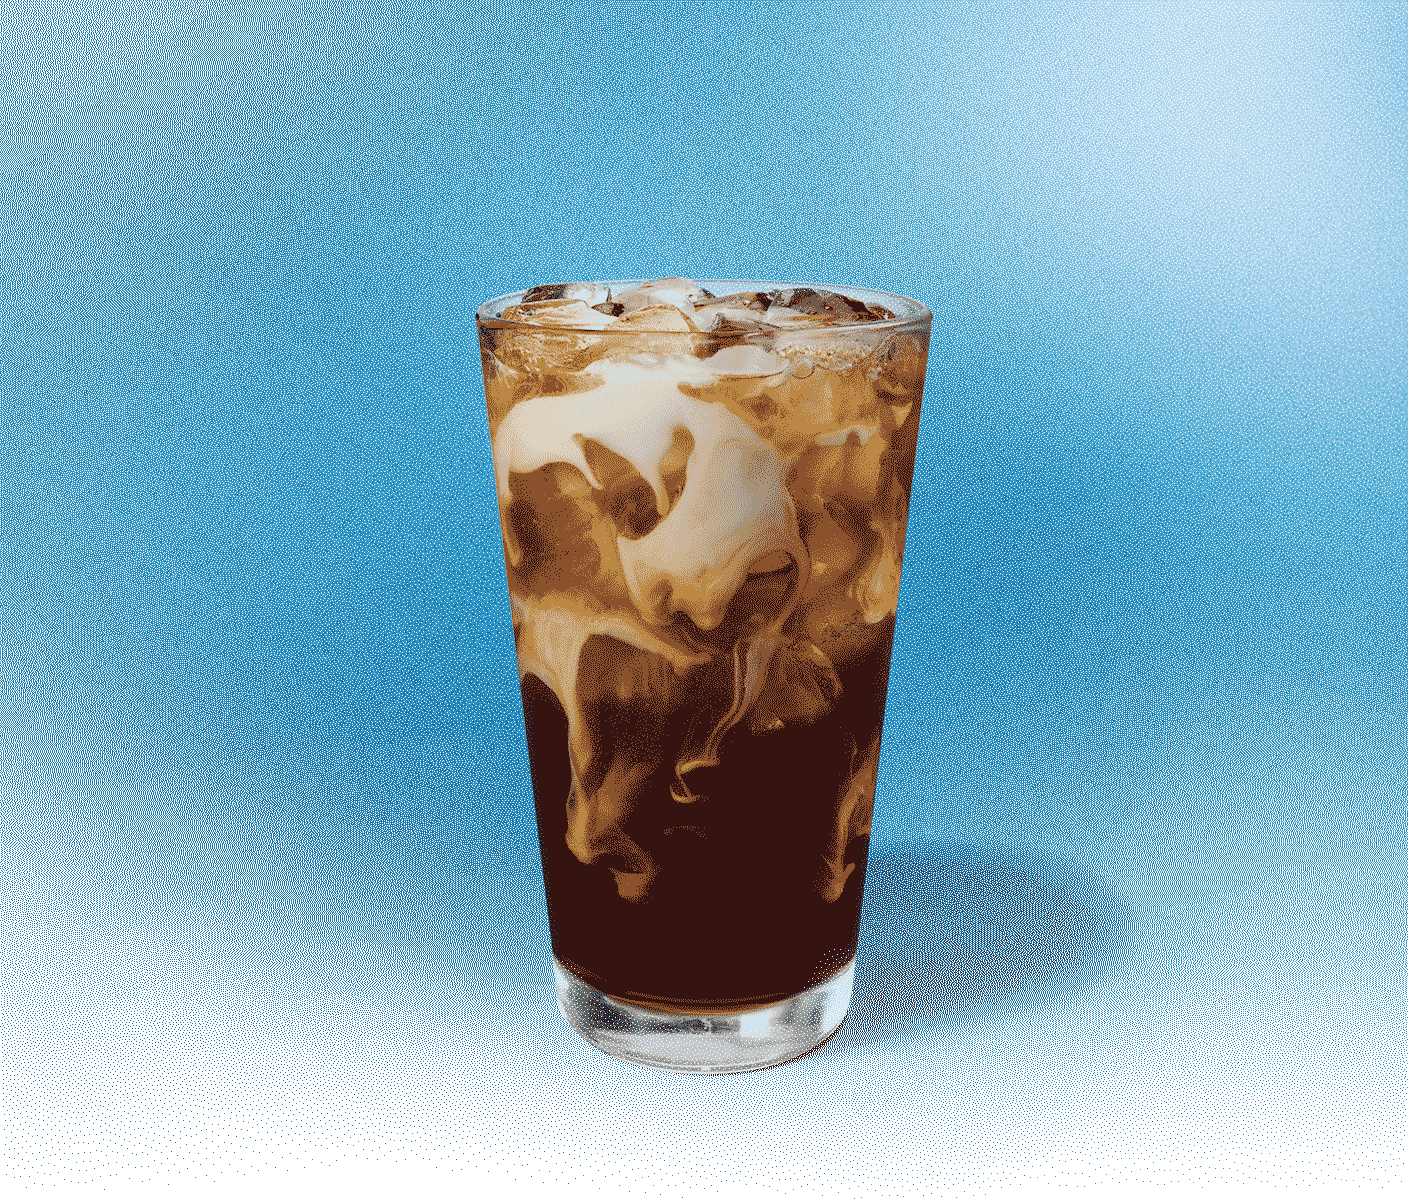 Tall glass of cold coffee with creamy swirls